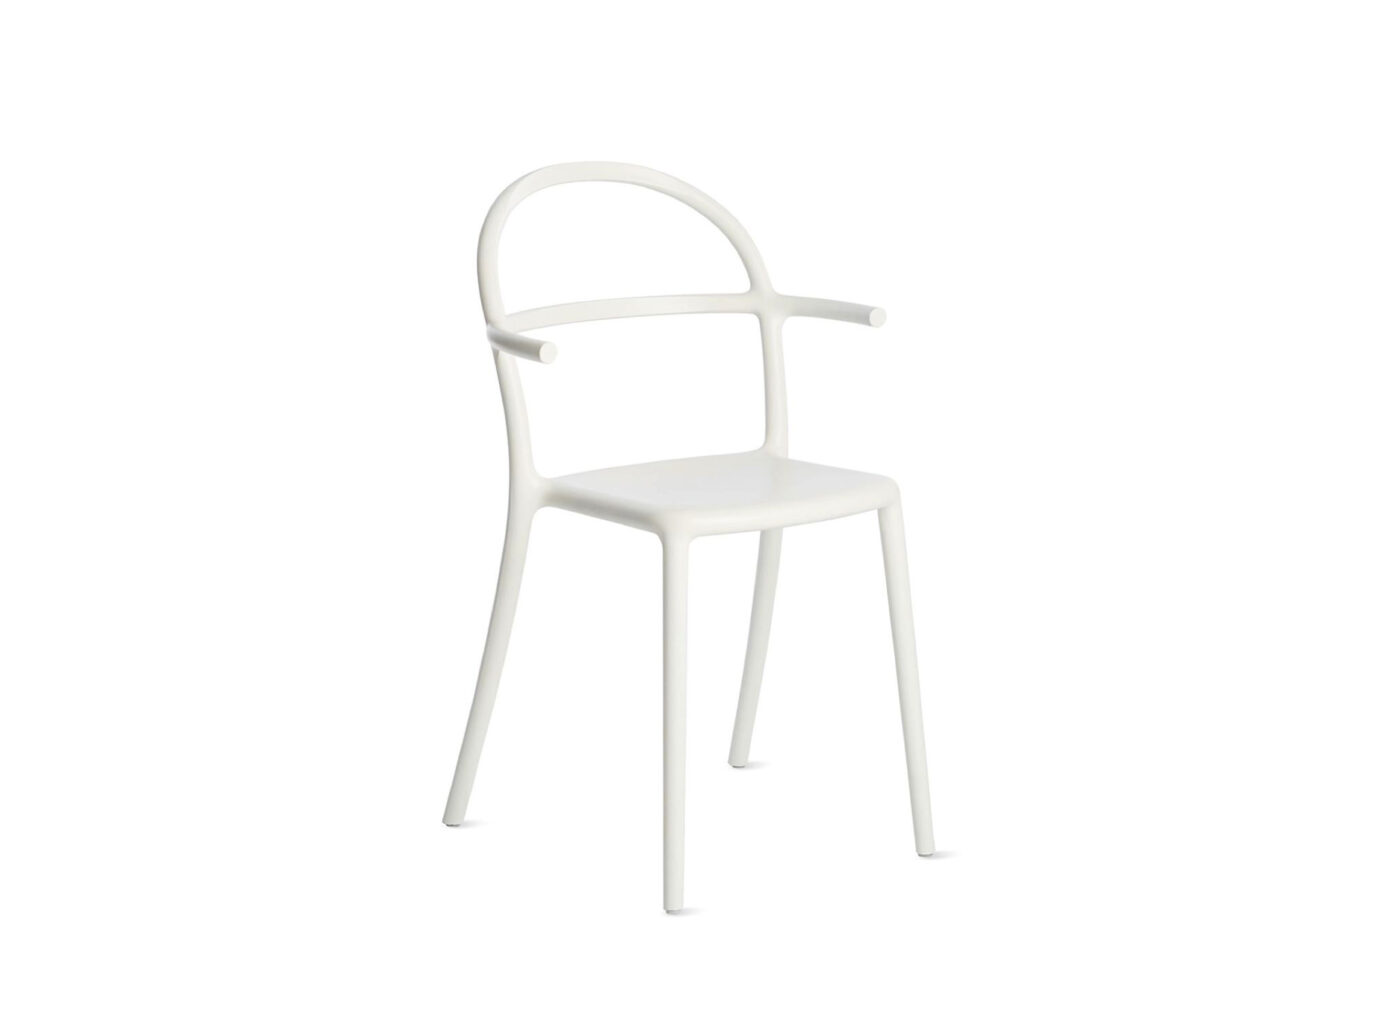 Generic C Chair Designed by Philippe Starck for Kartell